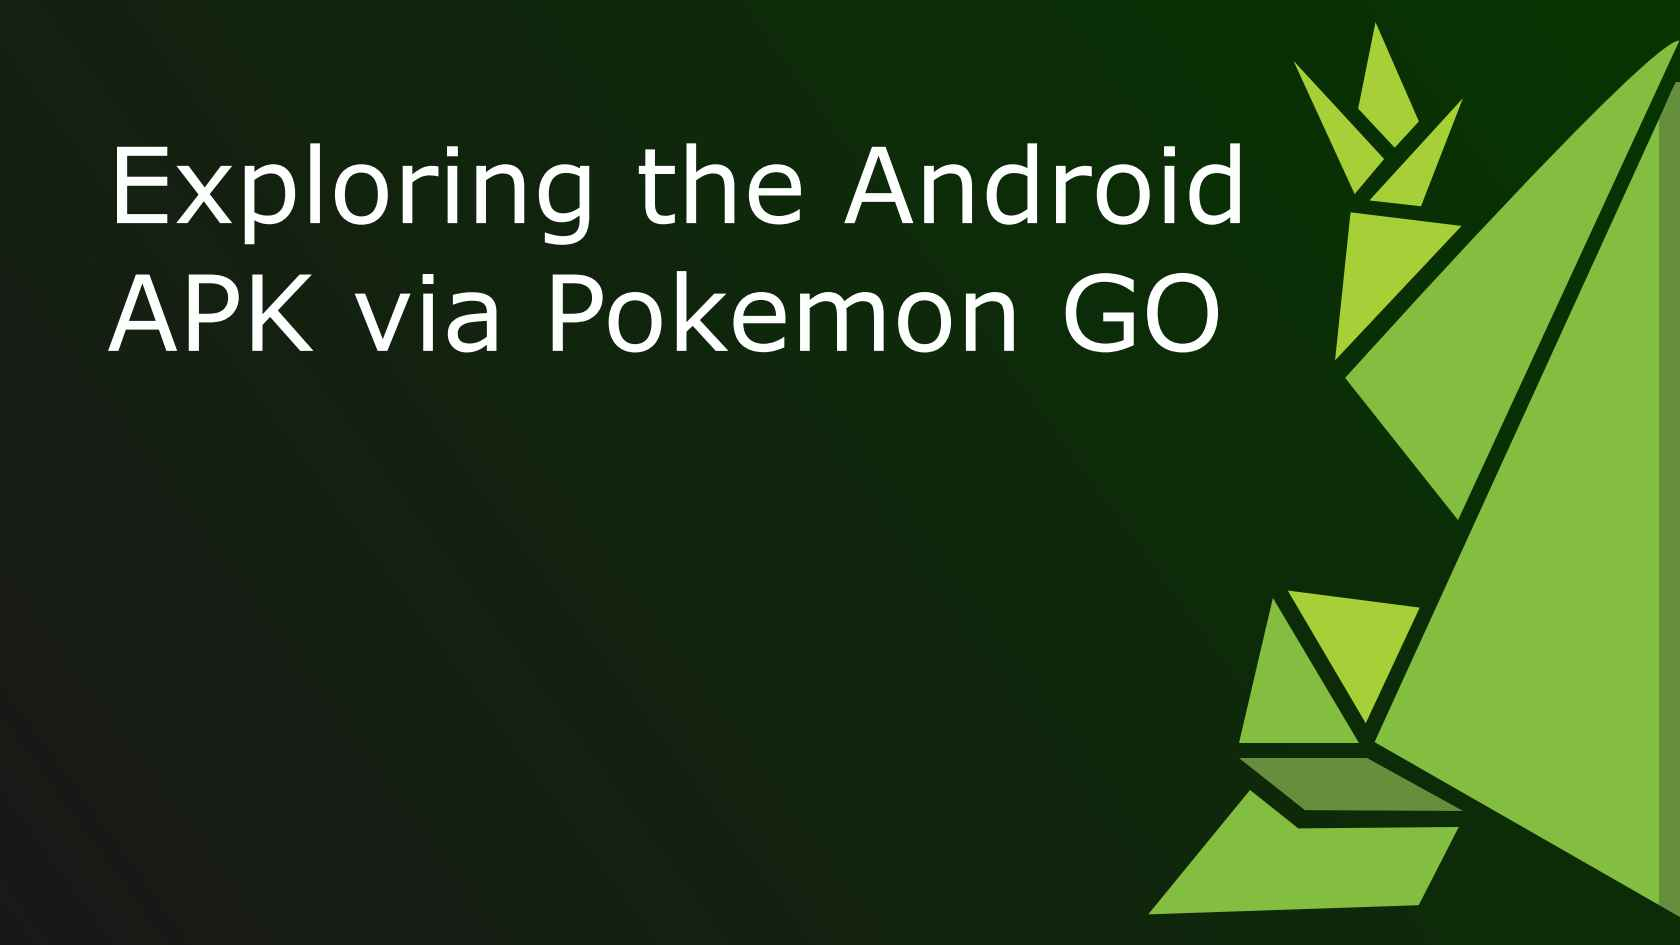 Exploring the Android APK